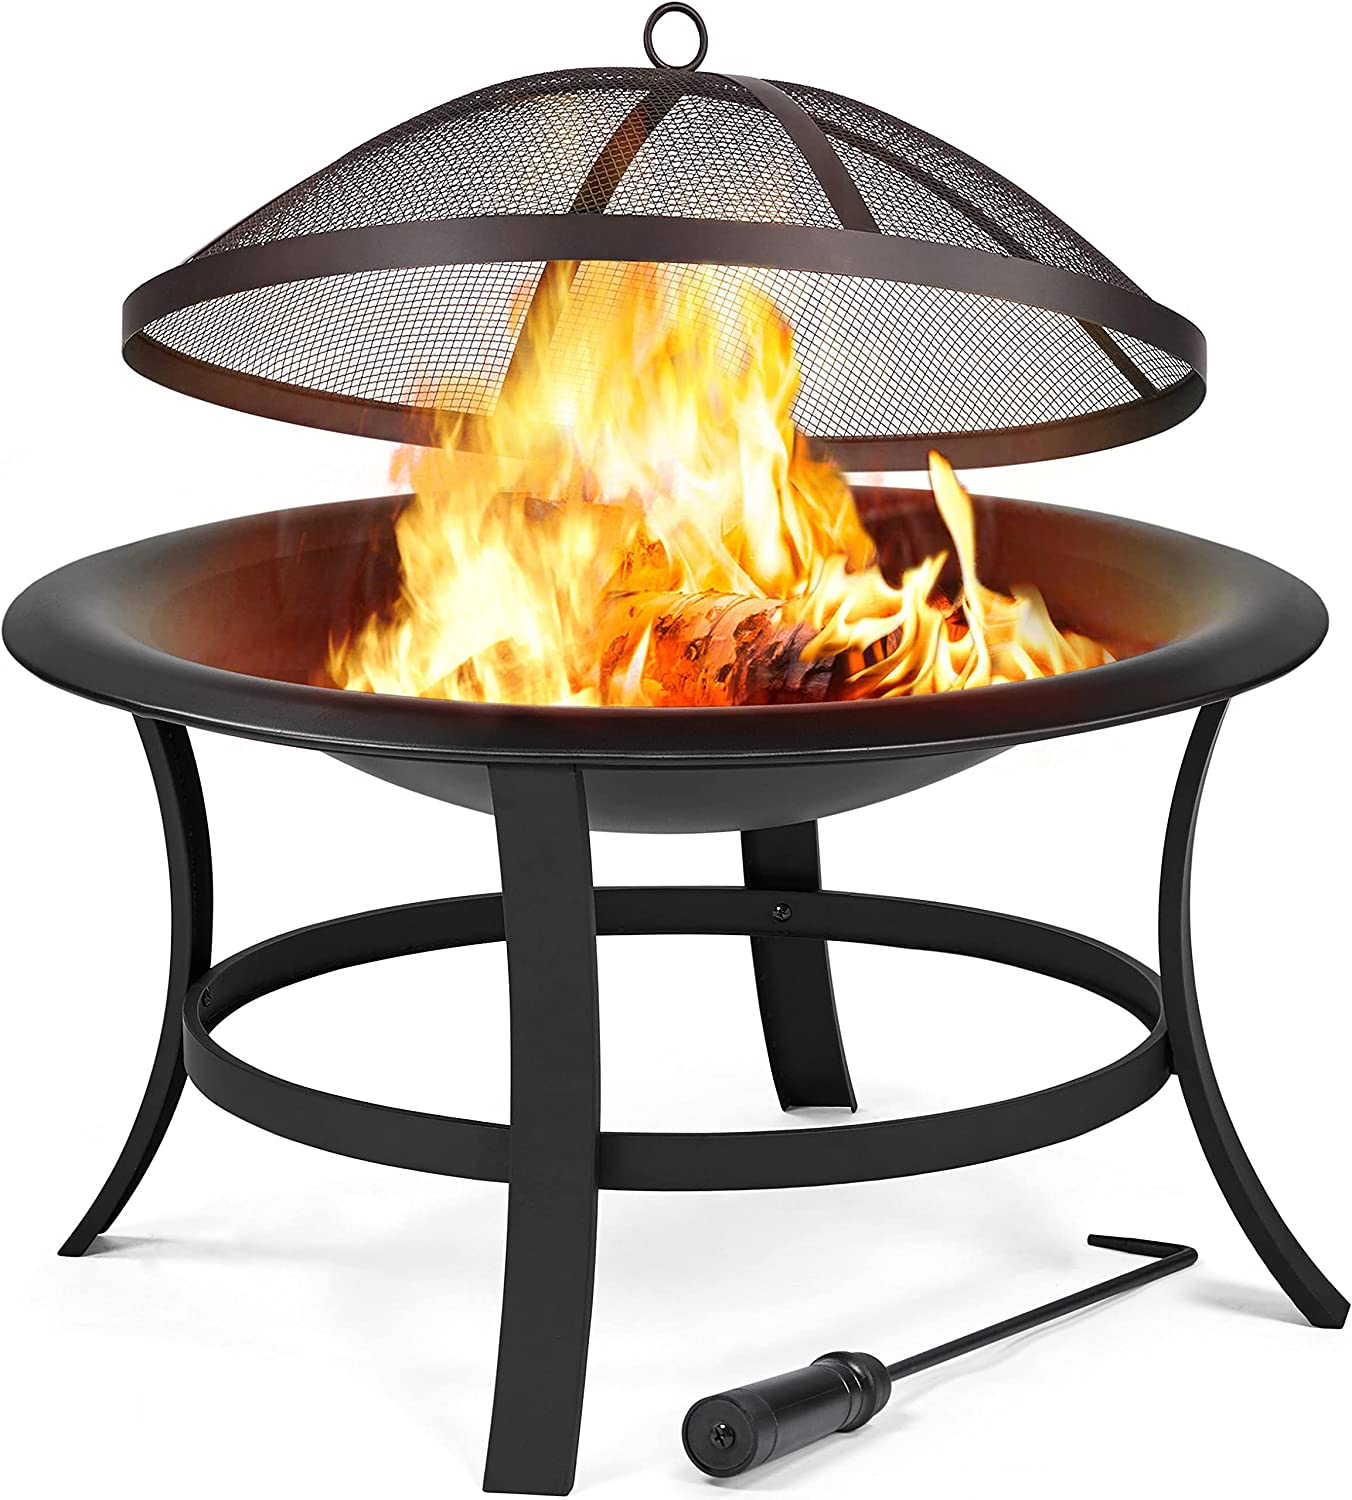 Yaheetech Fire Pits 29in Outdoor Wood Burning Round Fire Pit Wood Charcoal Burning Firepits Fire Bowl with Spark Screen BBQ for Outside Backyard Patio Camping, Black : Patio, Lawn & Garden - Amazon.com